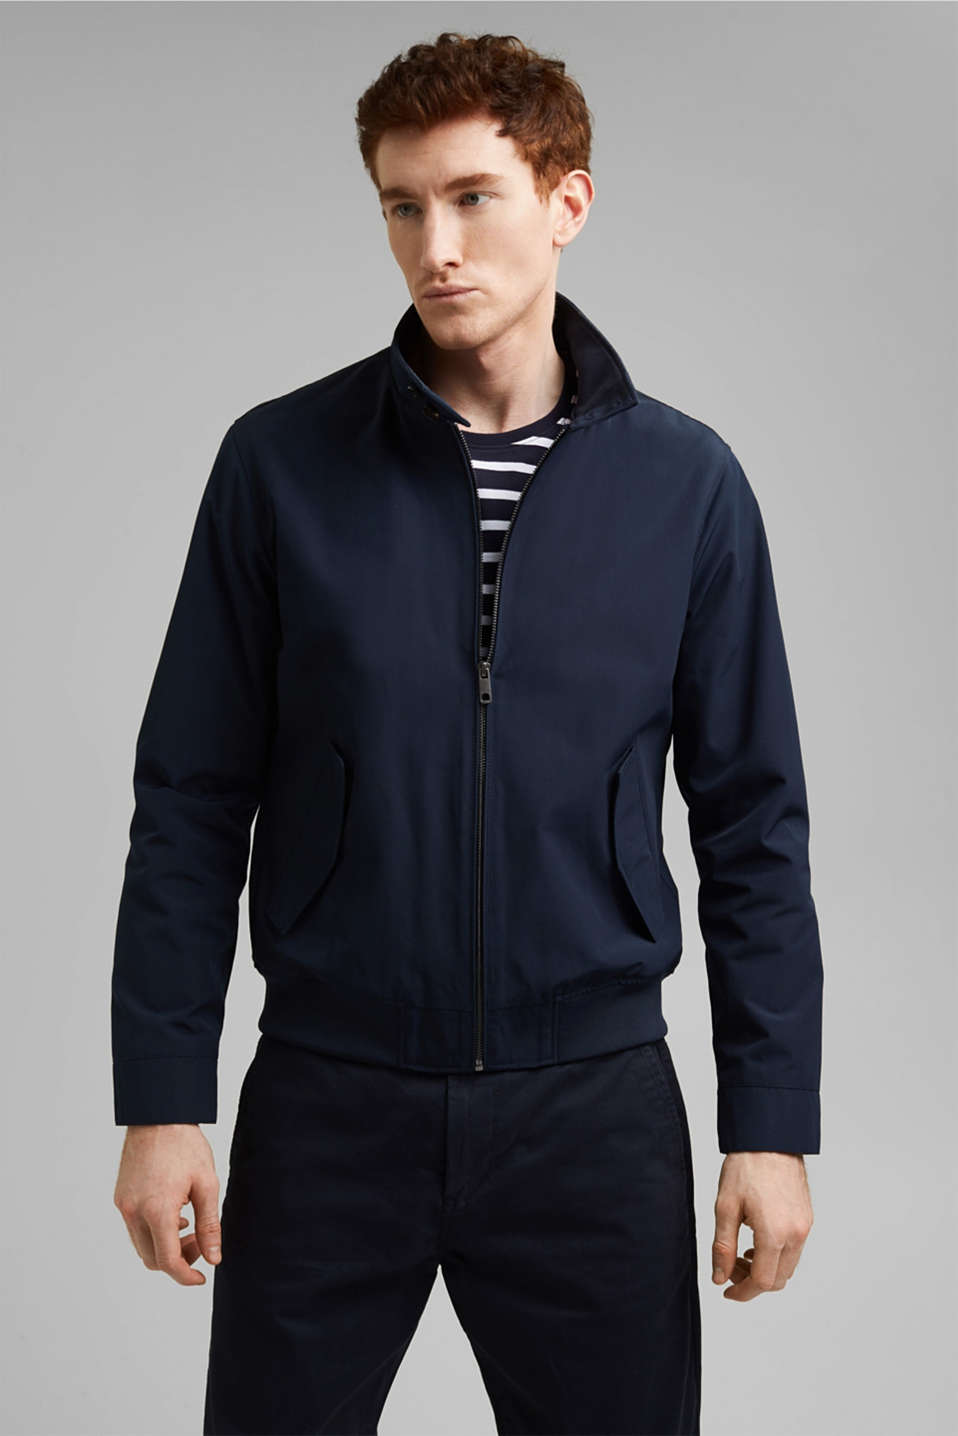 Esprit - Af genanvendte materialer: harrington-jakke med ternet for